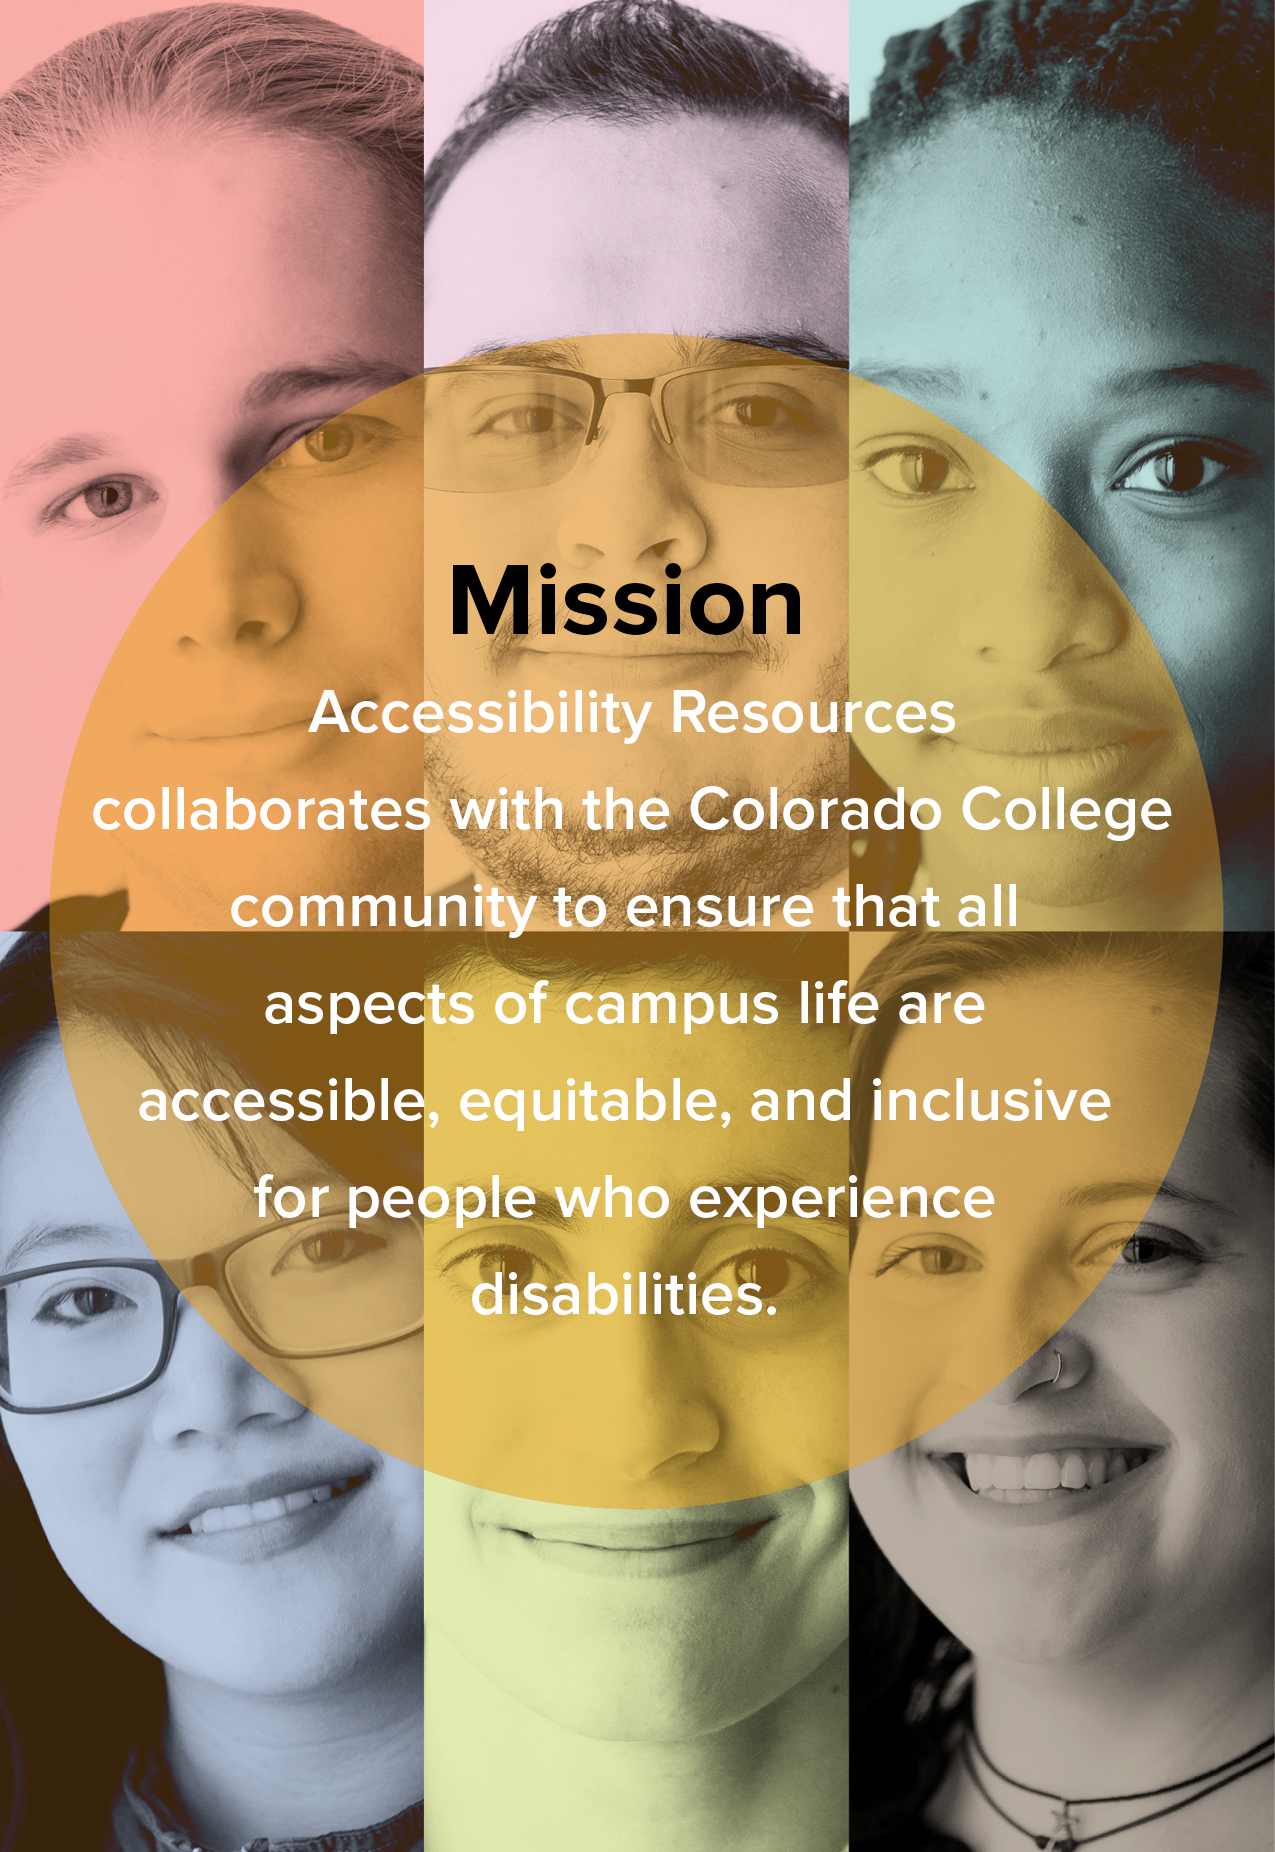 Six students representing different races, ethnicities, and genders. Text on top of image states: Accessibility Resources collaborates with the Colorado College community to ensure that all aspects of campus life are accessible, equitable, and inclusive for people who experience disabilities.